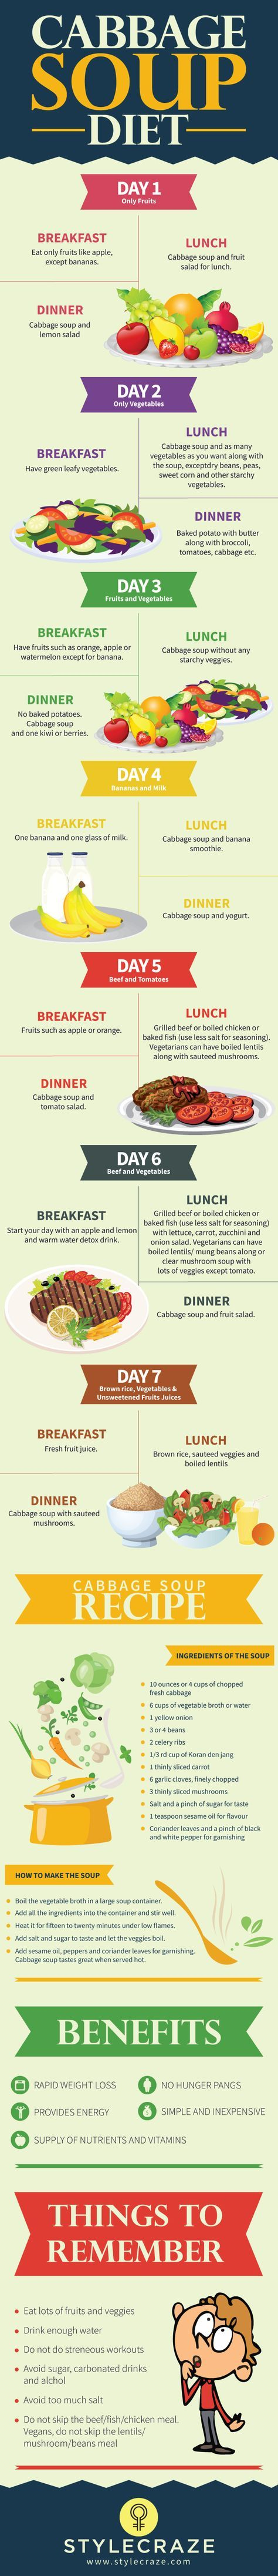 Cabbage Soup Diet For Rapid Weight Loss: Losing weight is one of the most challenging tasks. If you are in search of an effective diet that could help you reduce weight drastically, try the cabbage soup diet. This diet is extremely helpful for people who want to quickly shed weight. Cabbage soup is tasty and safe. Moreover, it is suitable for people of all age groups. All You Need To Know About Cabbage Soup Diet For Weight Loss